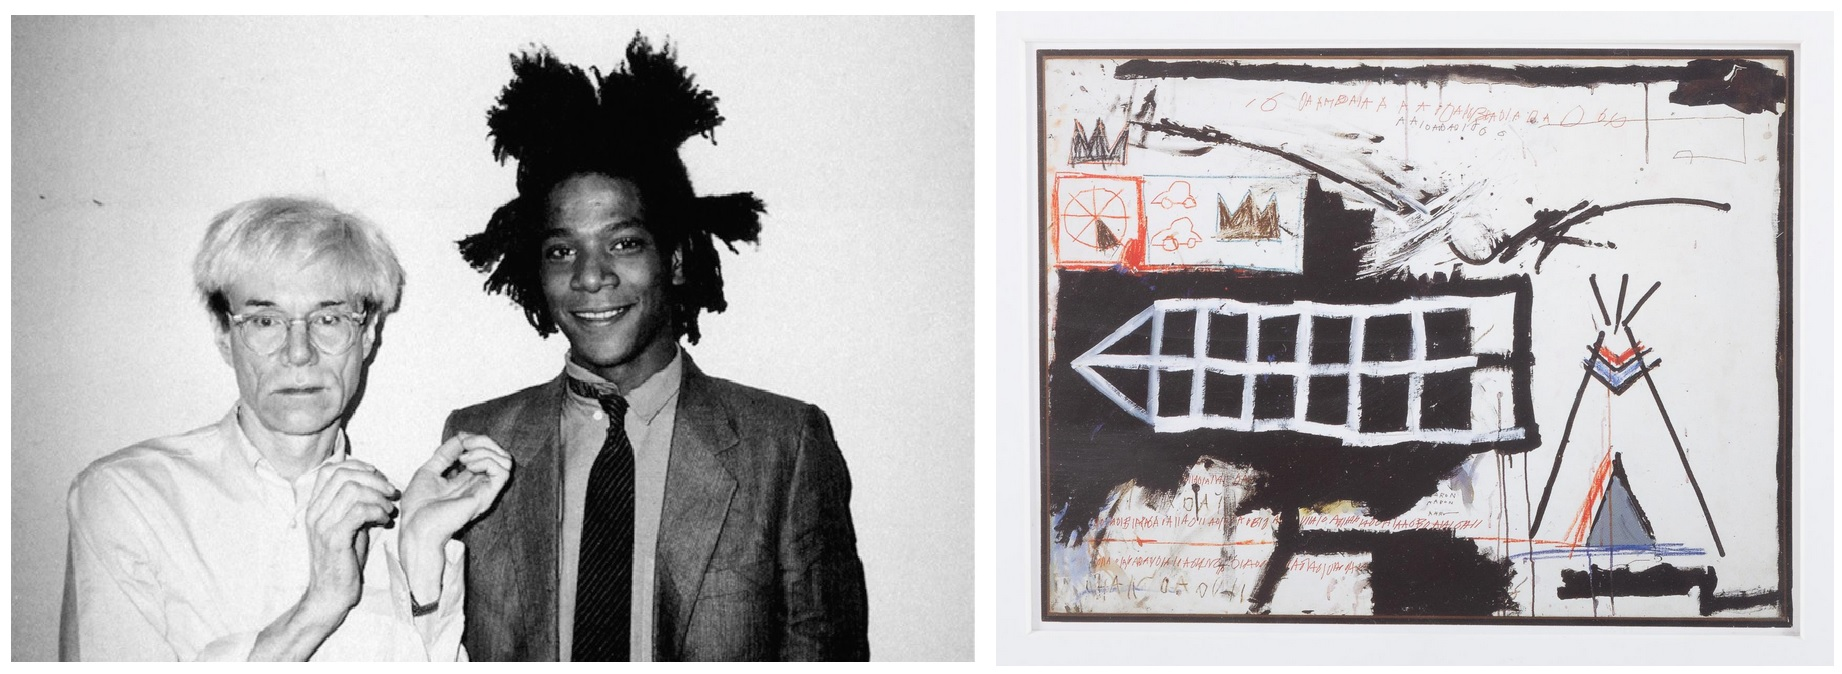 10 Things You Didn't Know About Jean-Michel Basquiat